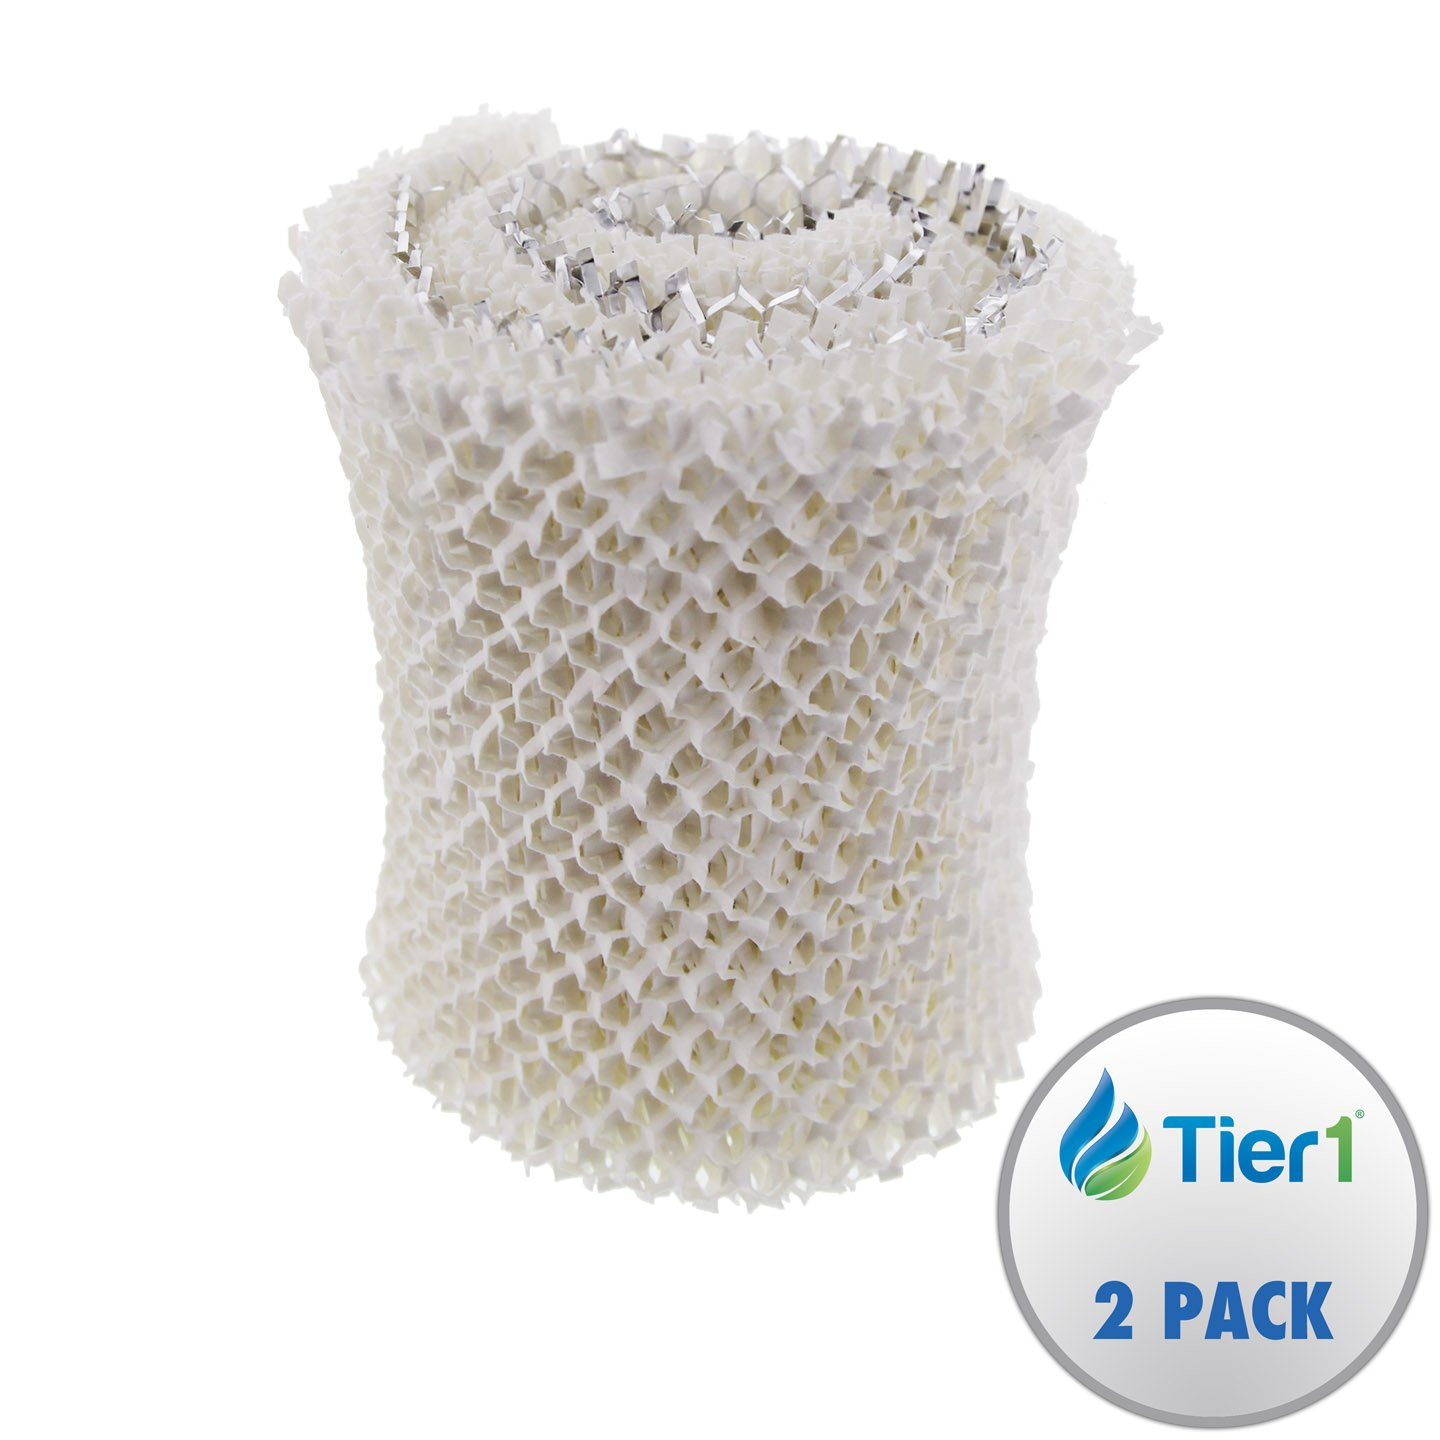 Tier1 MAF1 Comparable 14906 Replacement Humidifier Wick Filter for Emerson Models MA-0950, 1200, 1201 (2-pack)